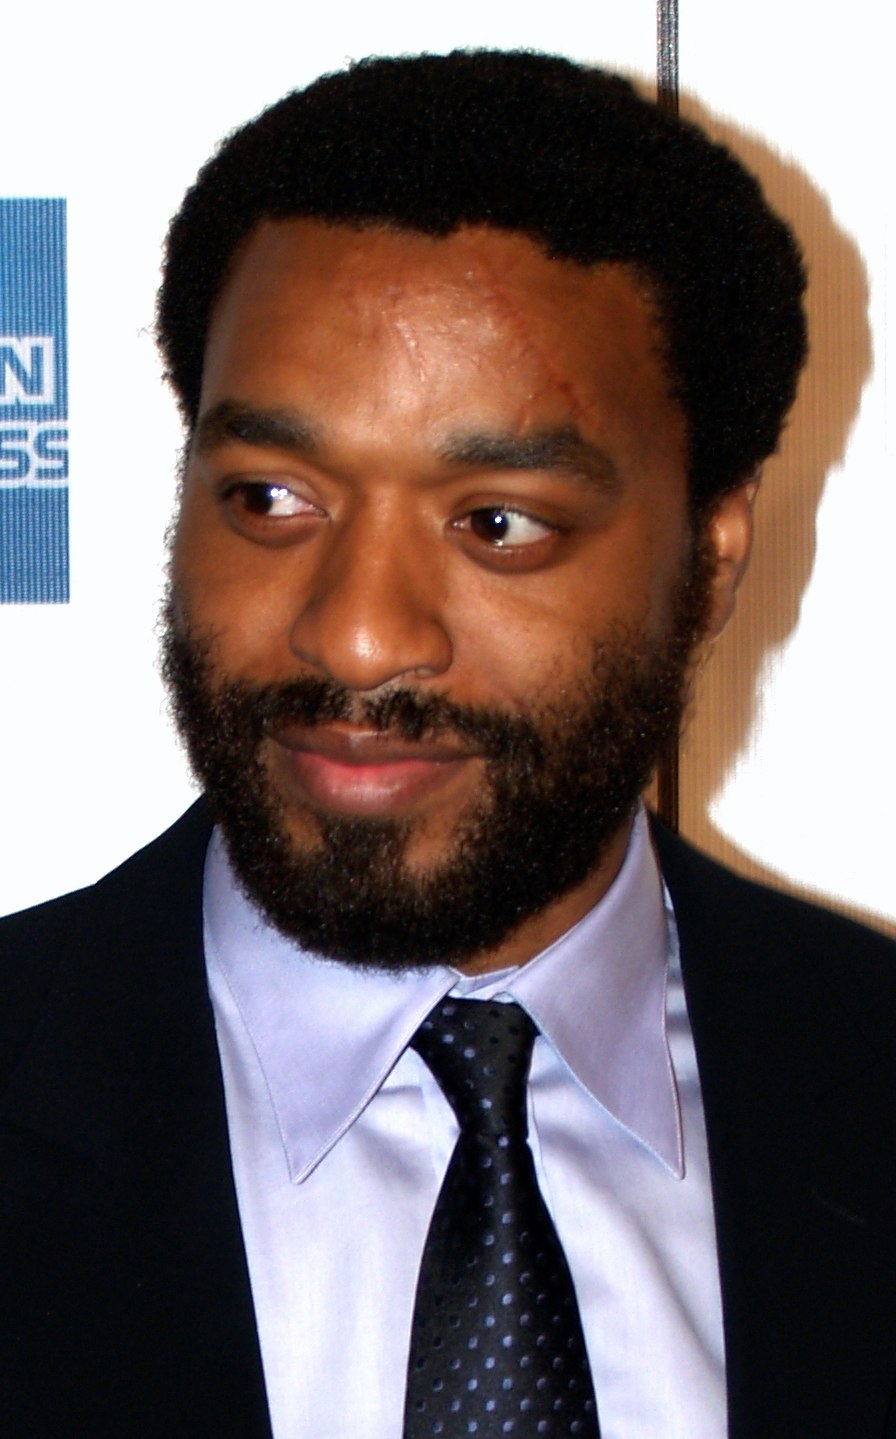 Chiwetel Ejiofor at the 2008 Tribeca Film Festival